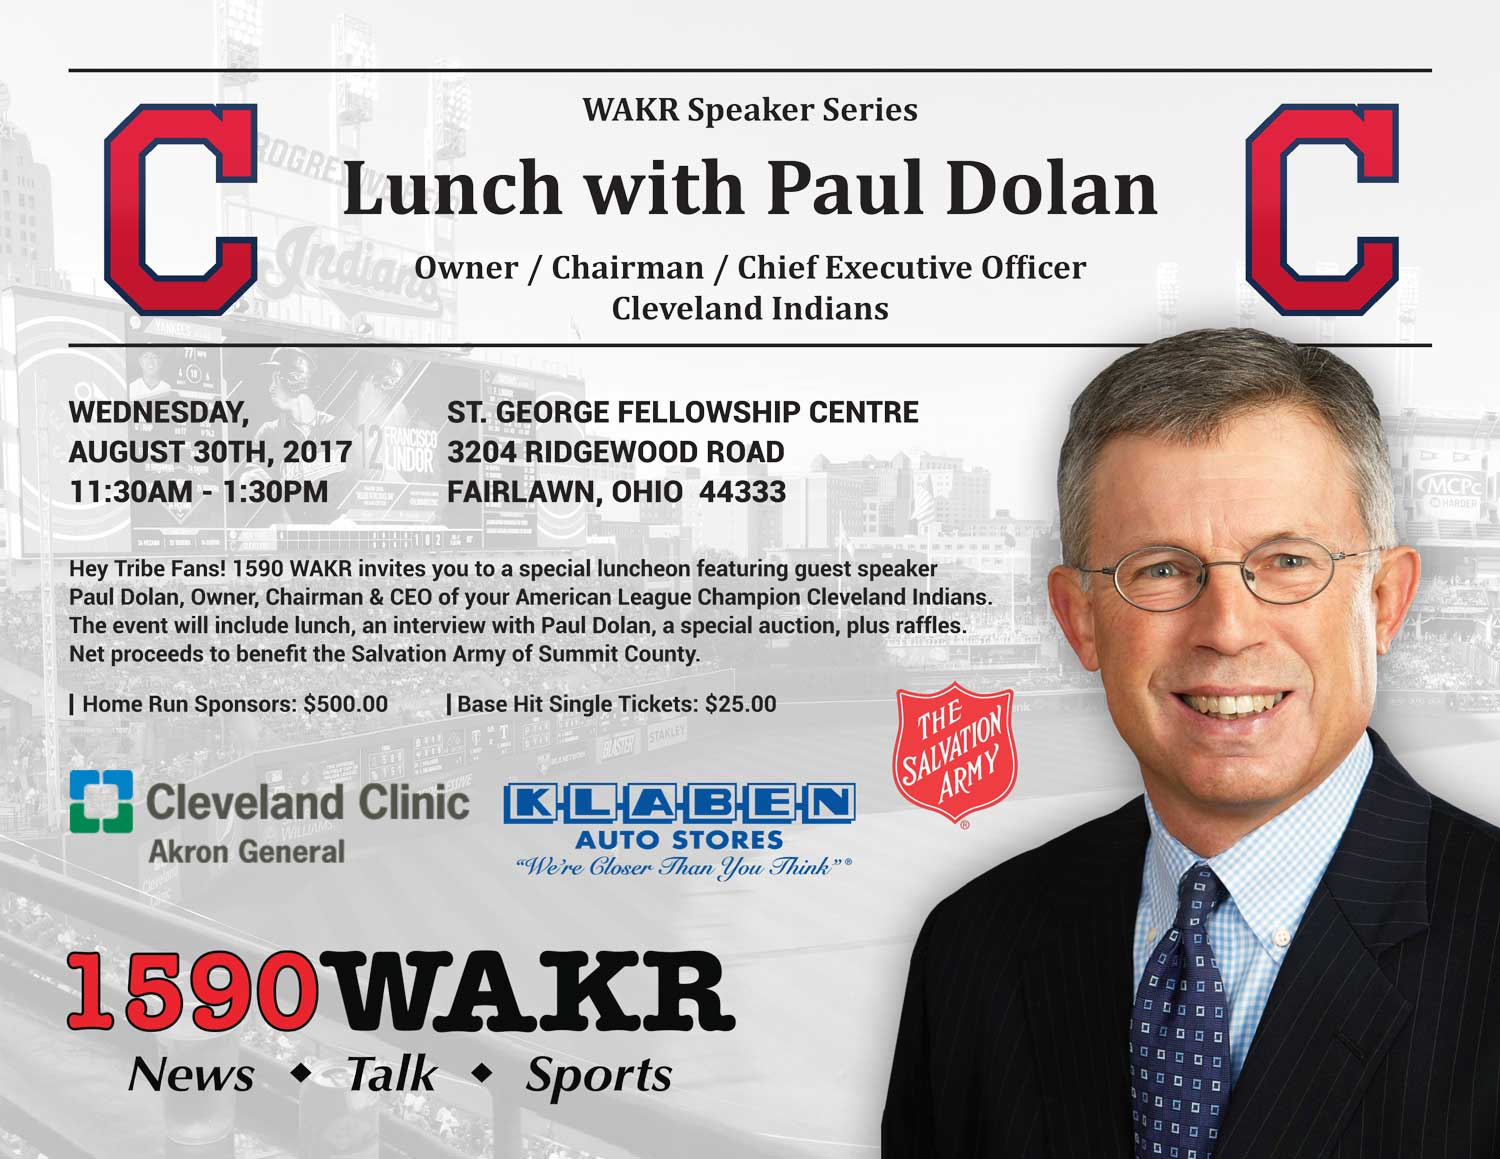 Lunch-PaulDolan-flyer-7.11.17